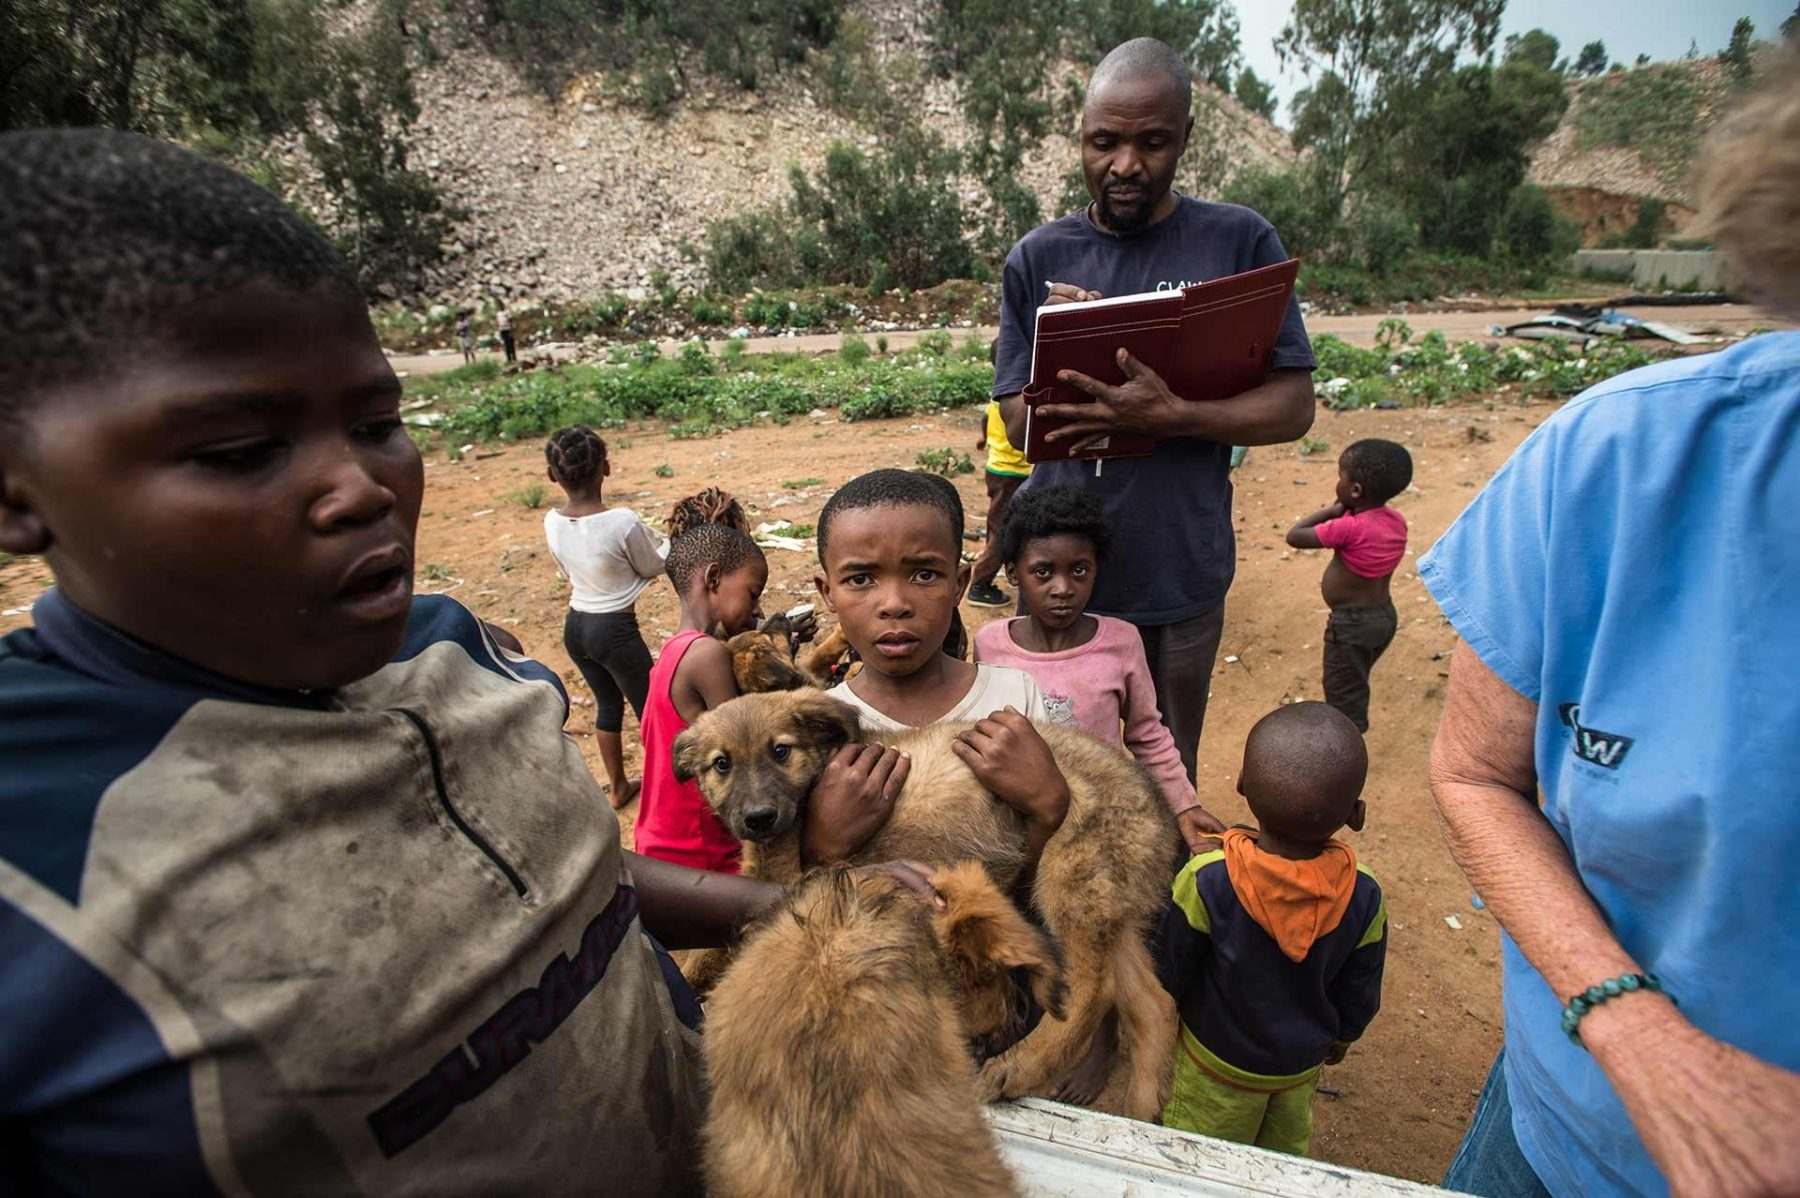 Children bringing their animals to the C.L.A.W. vehicle for health checks at the Randfontein municipal dumping site in Johannesburg. South Africa.